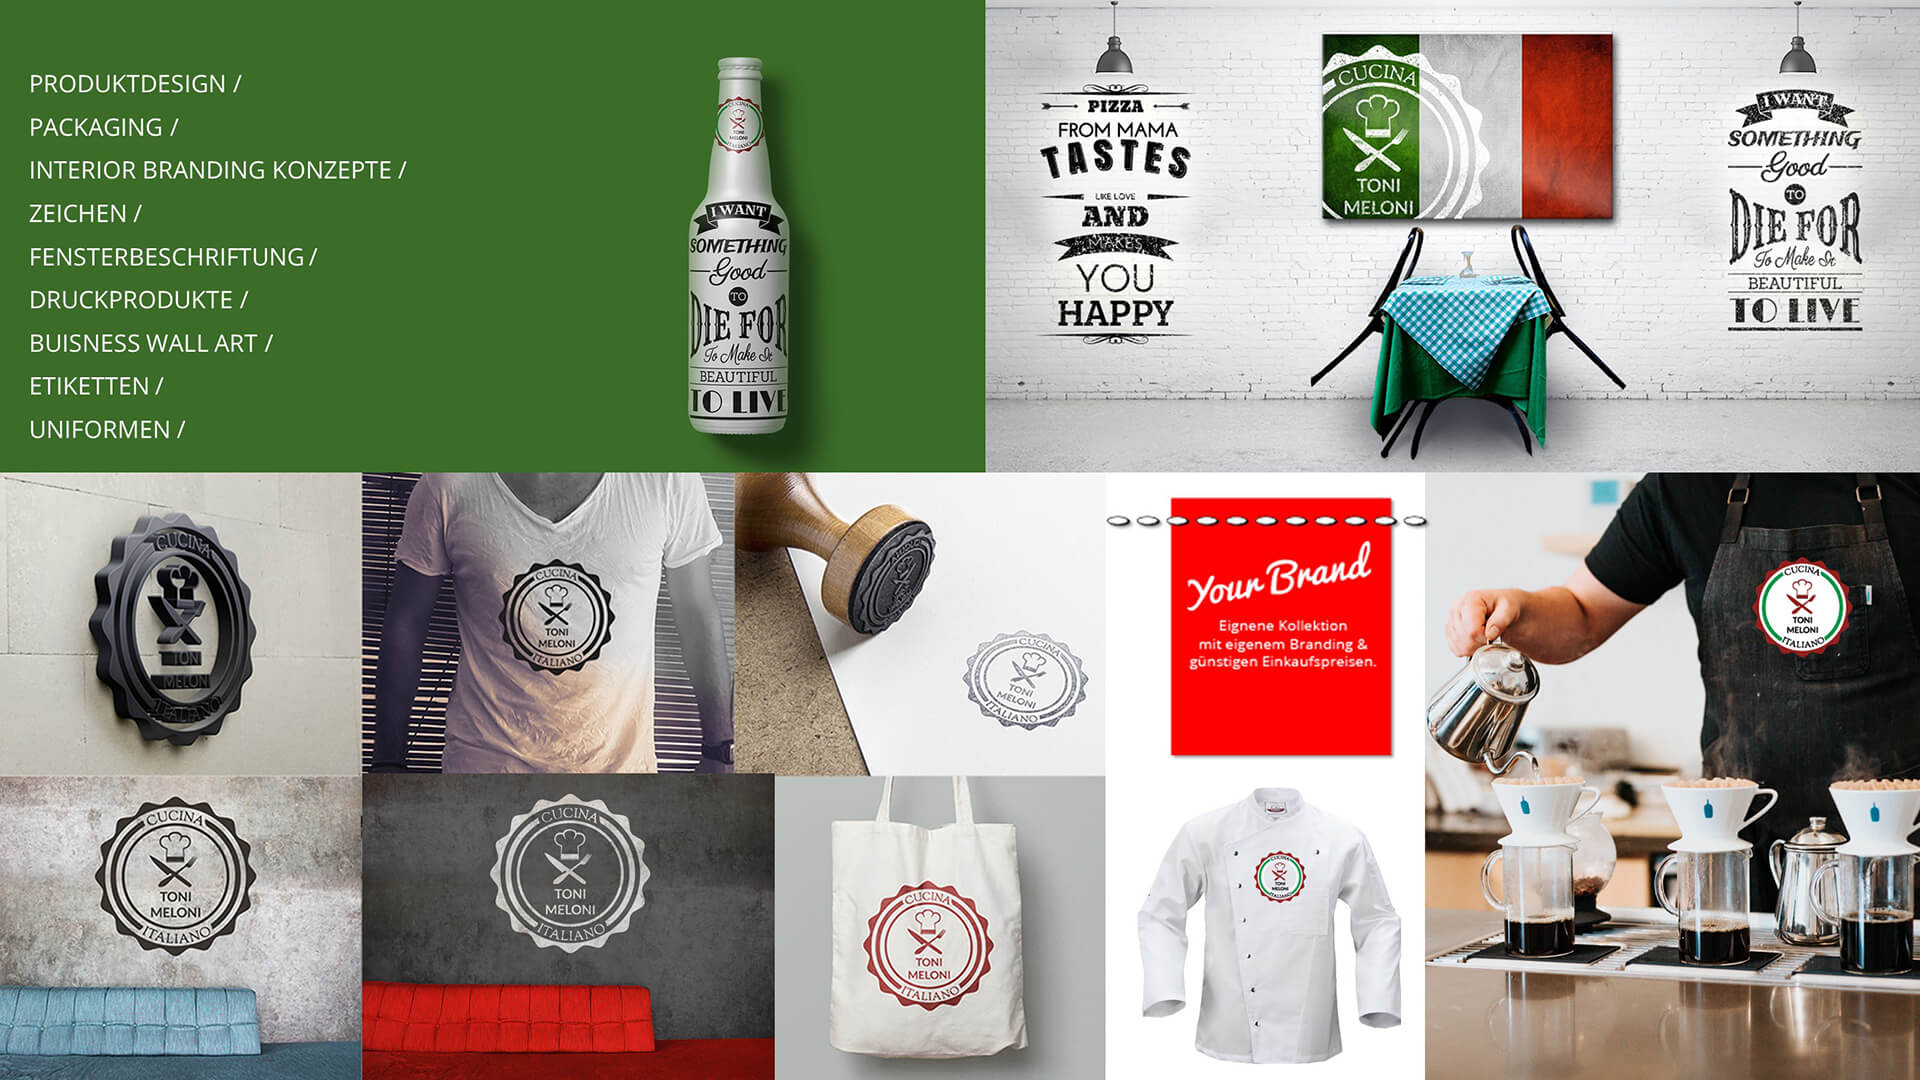 branding logo corporate design geschaeftsausstattung ci corporate identitiy cig 3